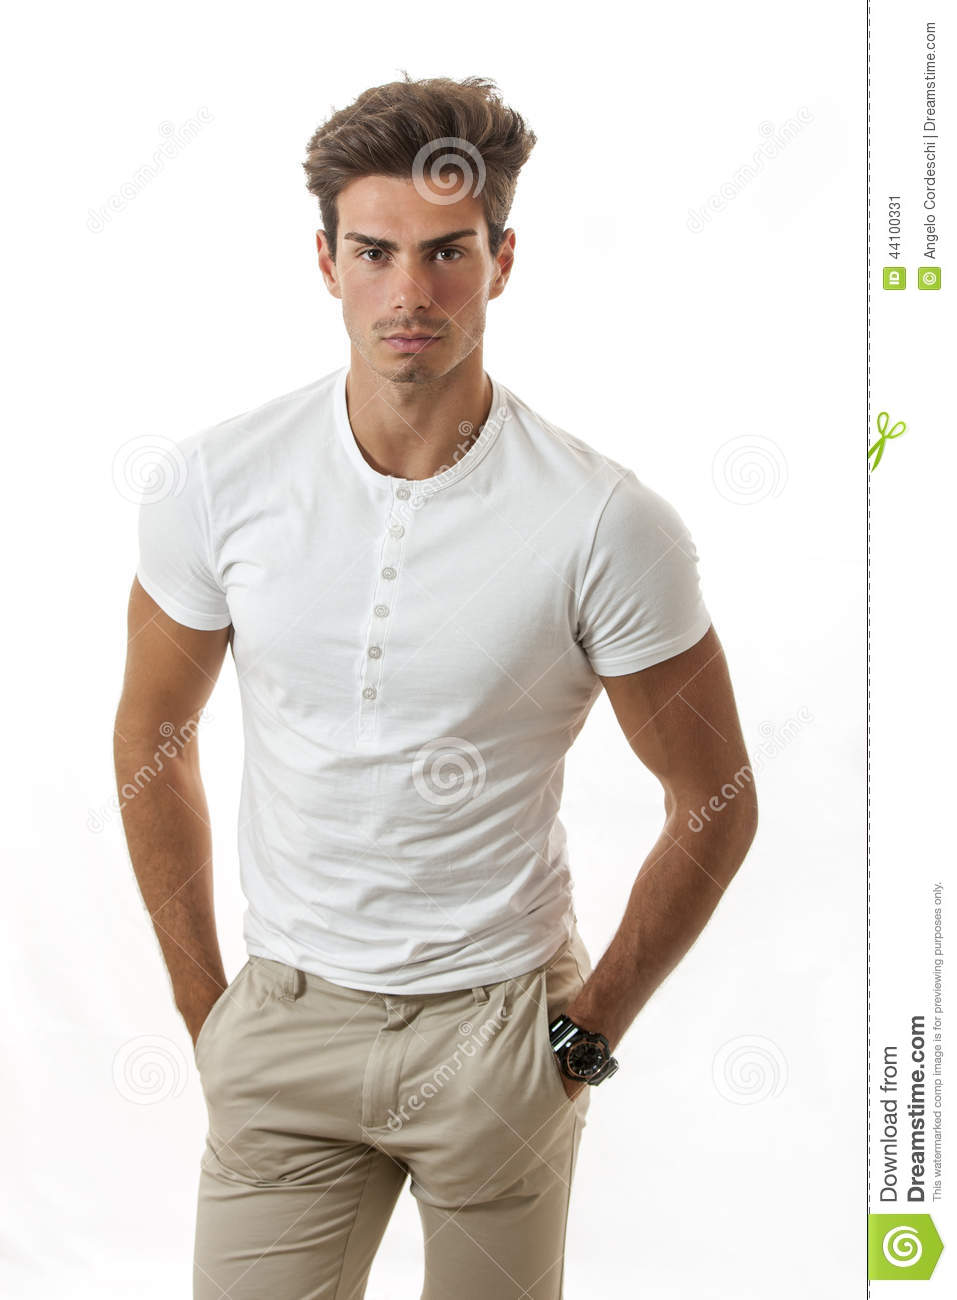 Manly Male Model Trendy Hairstyle Stock Photo 44100331 Megapixl